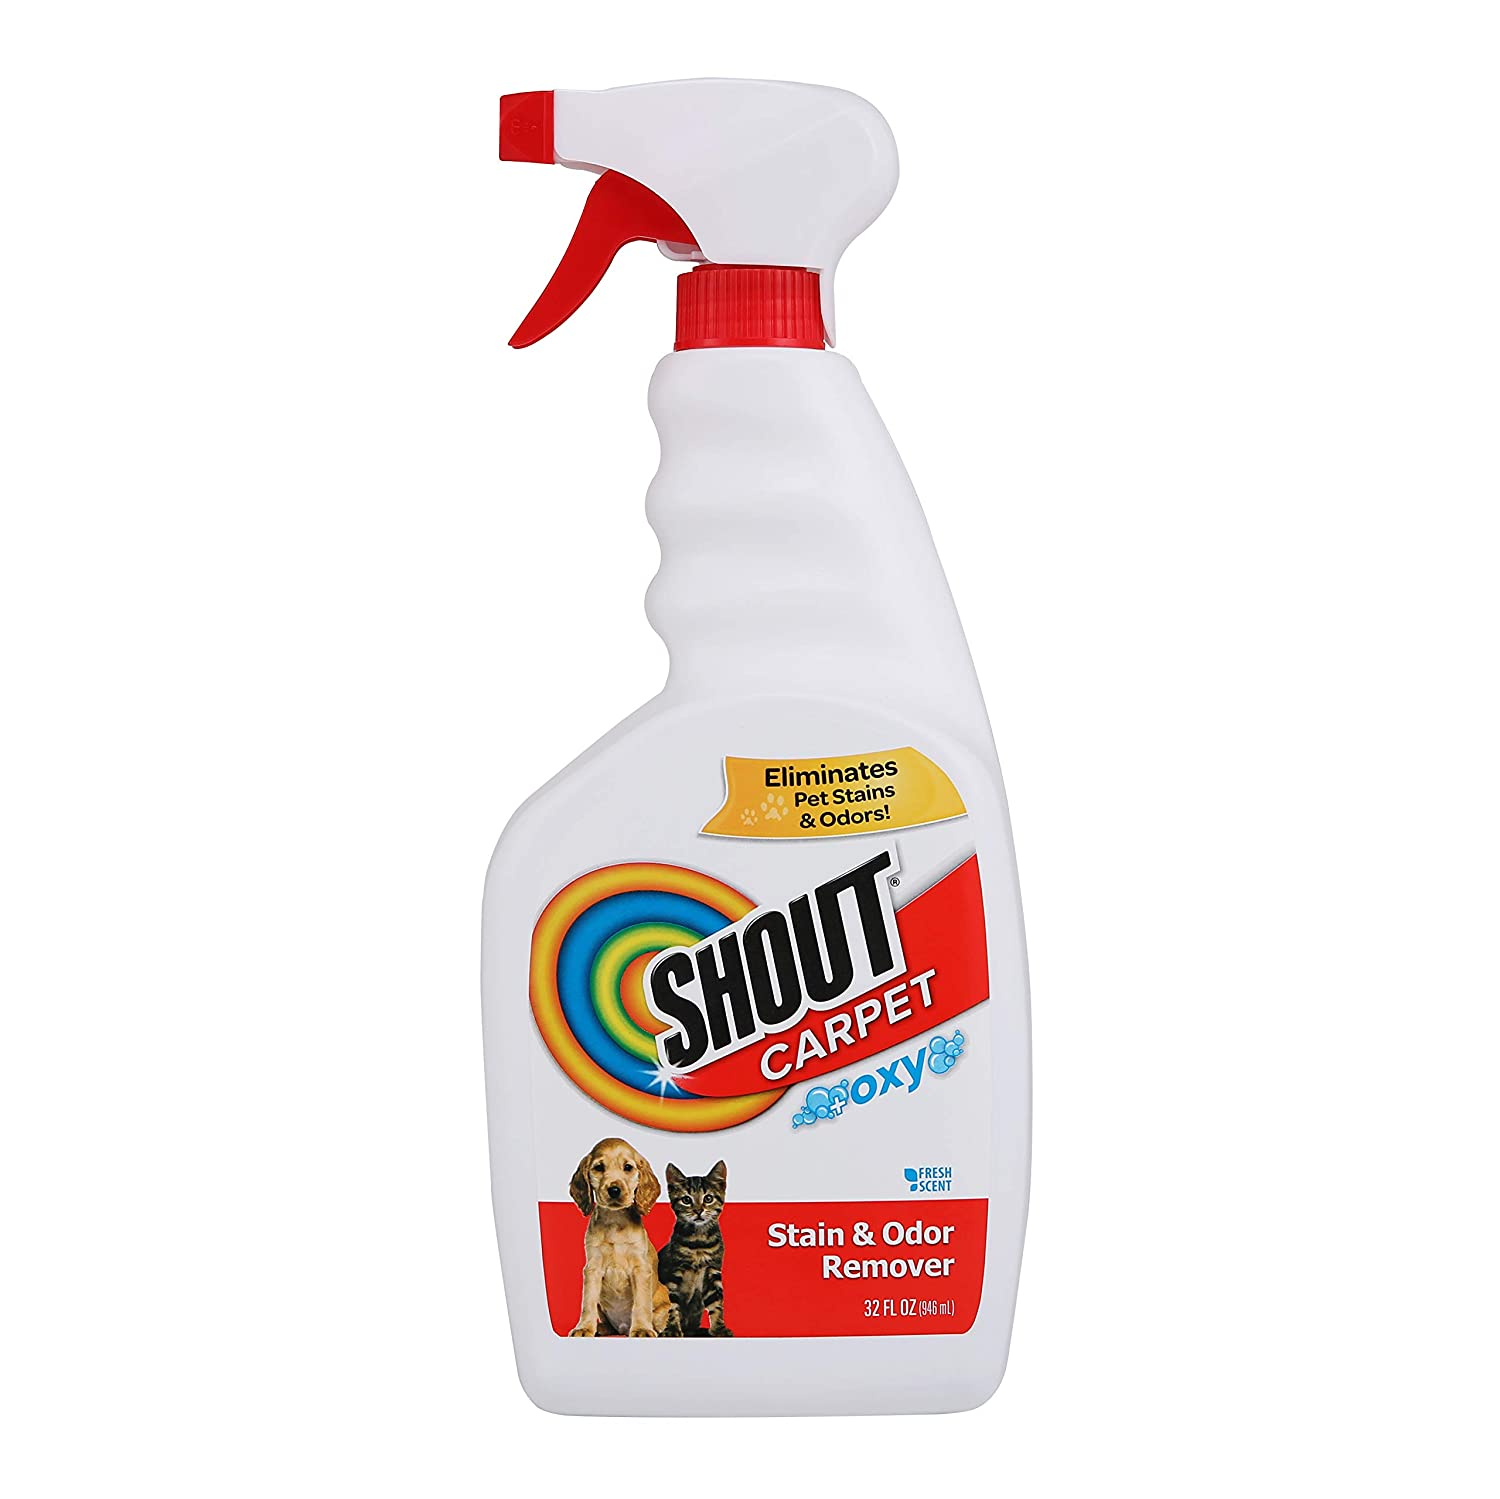 Shout Carpet Stain Odor Eliminator Spray | Completely Removes Tough Urine Stains & Prevents Remarking | Safe for Kids & Pets, | Fresh Scent, 32 Ounces